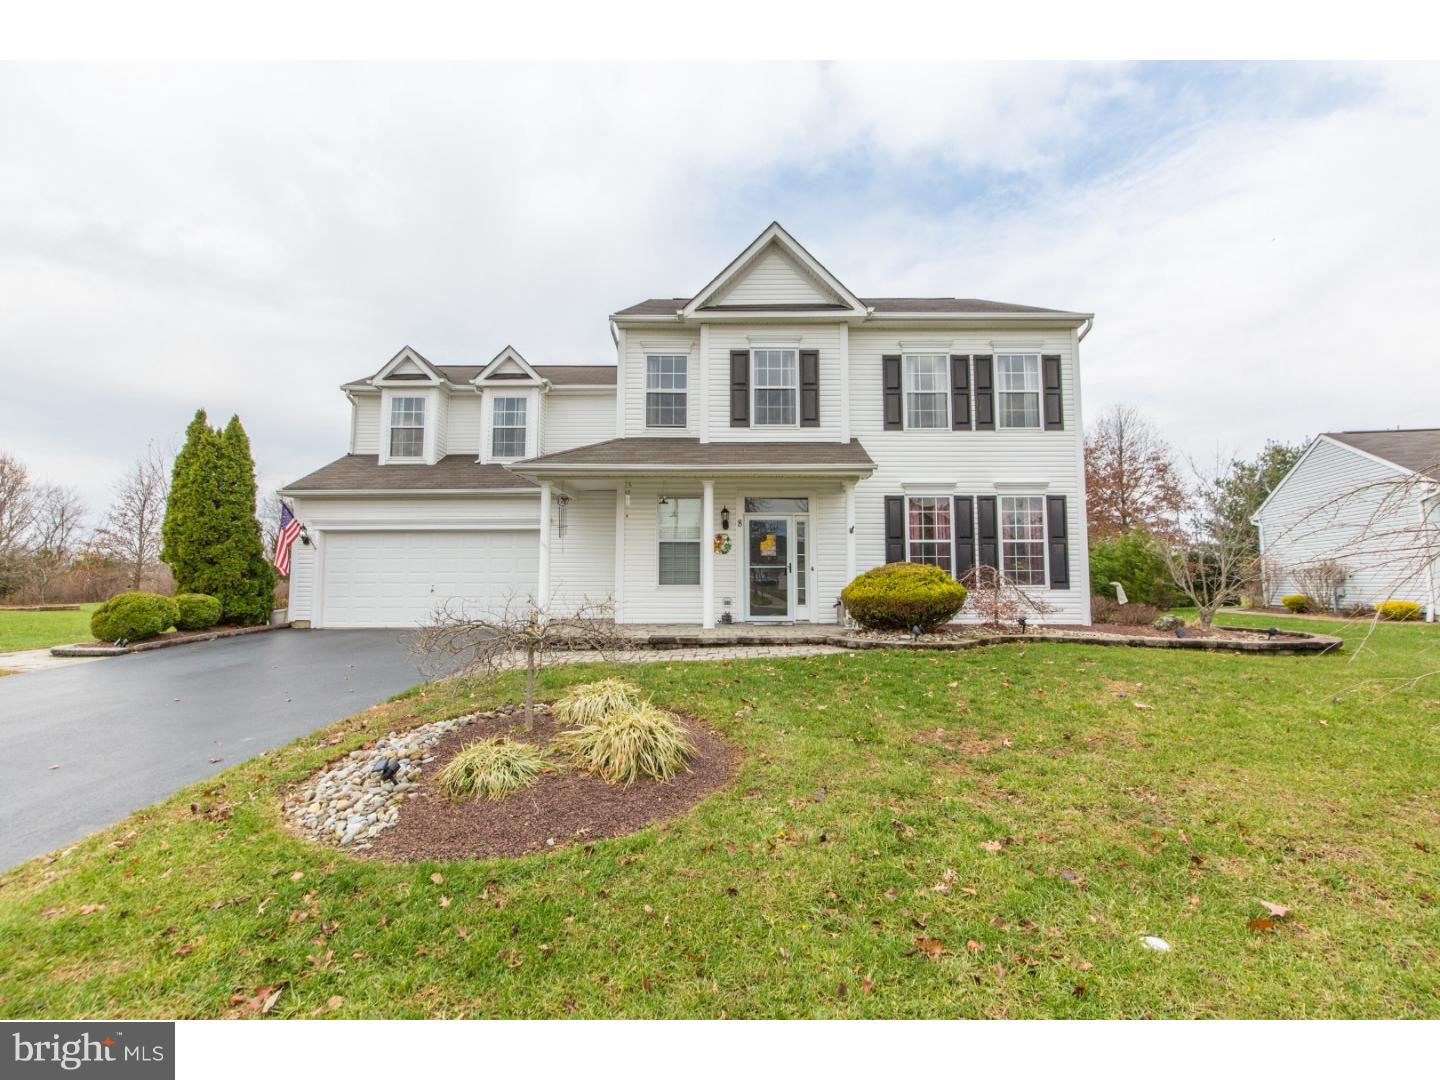 Single Family Home for Sale at 8 STRATHMORE WAY East Windsor Township, New Jersey 08520 United StatesMunicipality: East Windsor Township